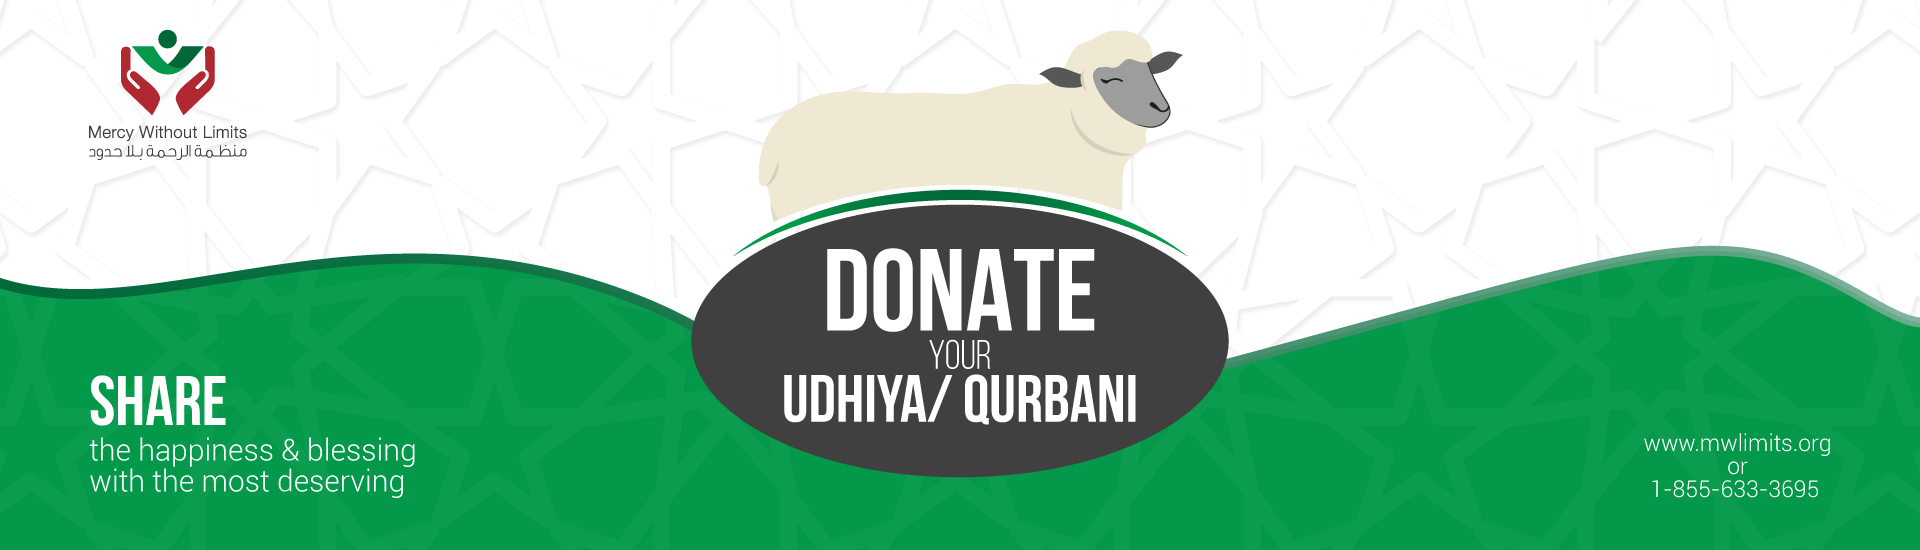 Udhiya Qurbani | Mercy Without Limits